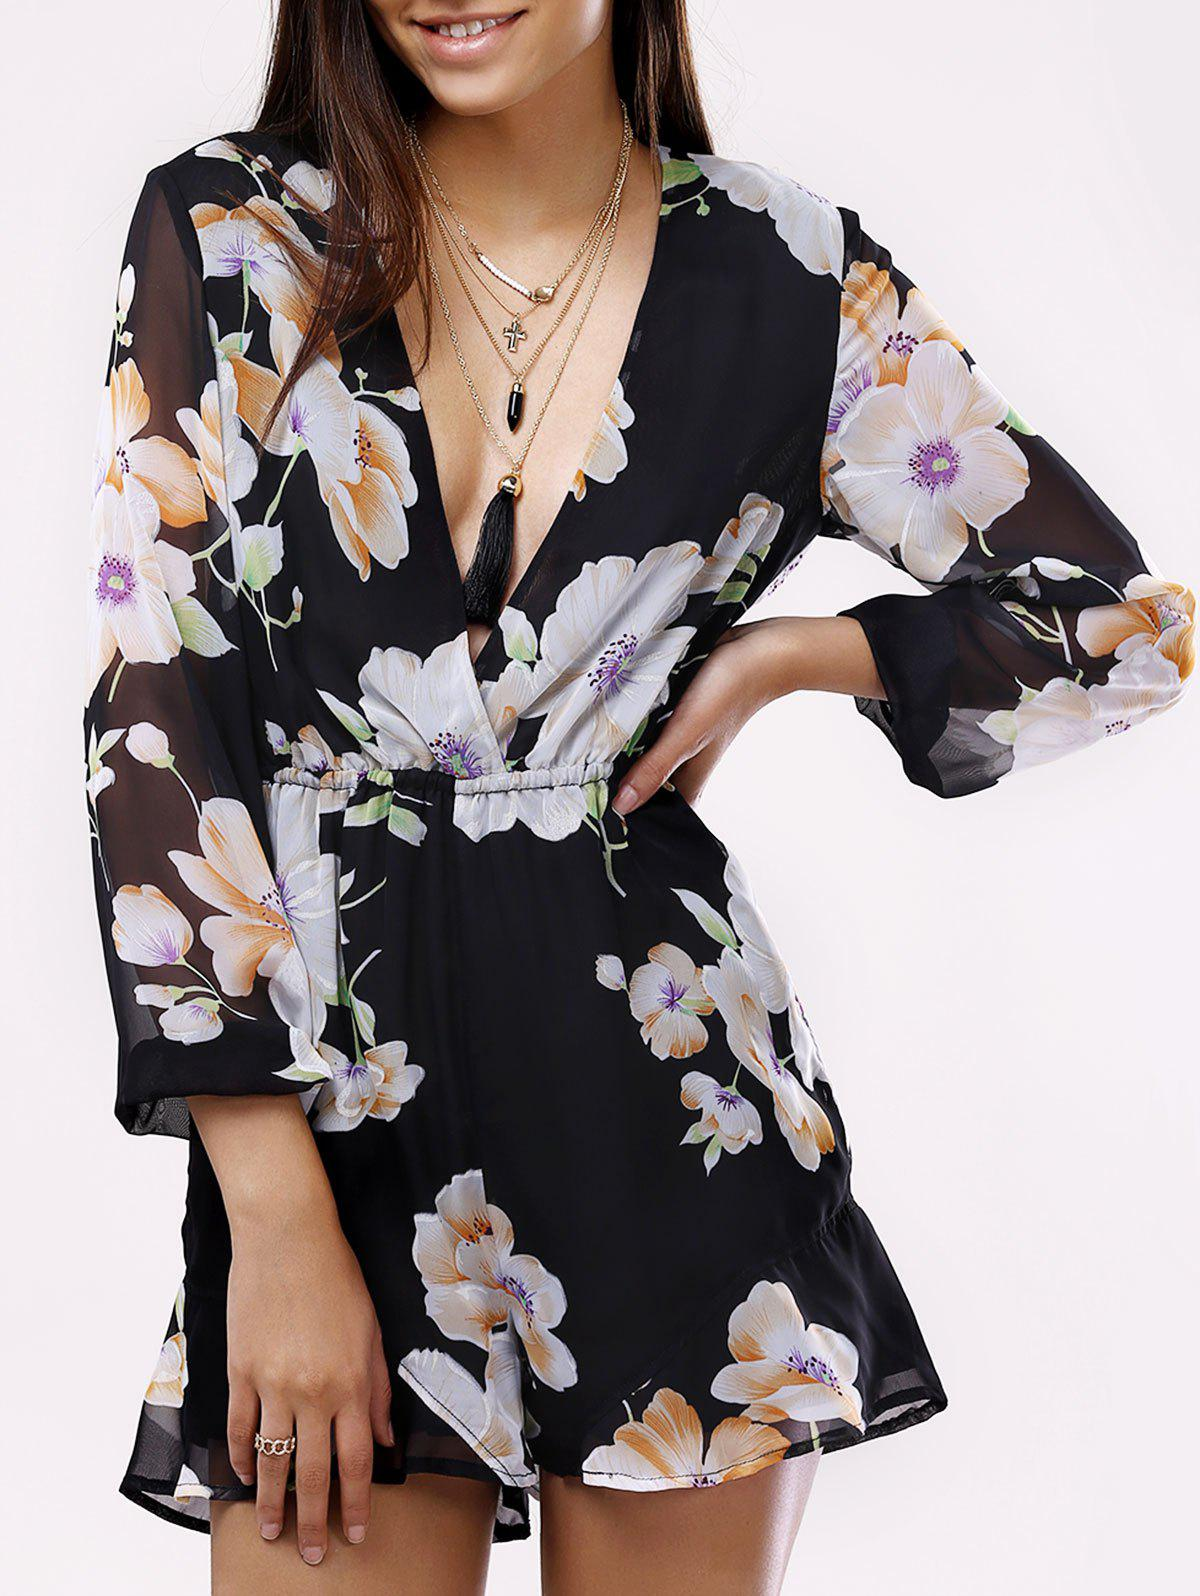 Fashionable Plunging Neck Printing Long Sleeves Romper For Women